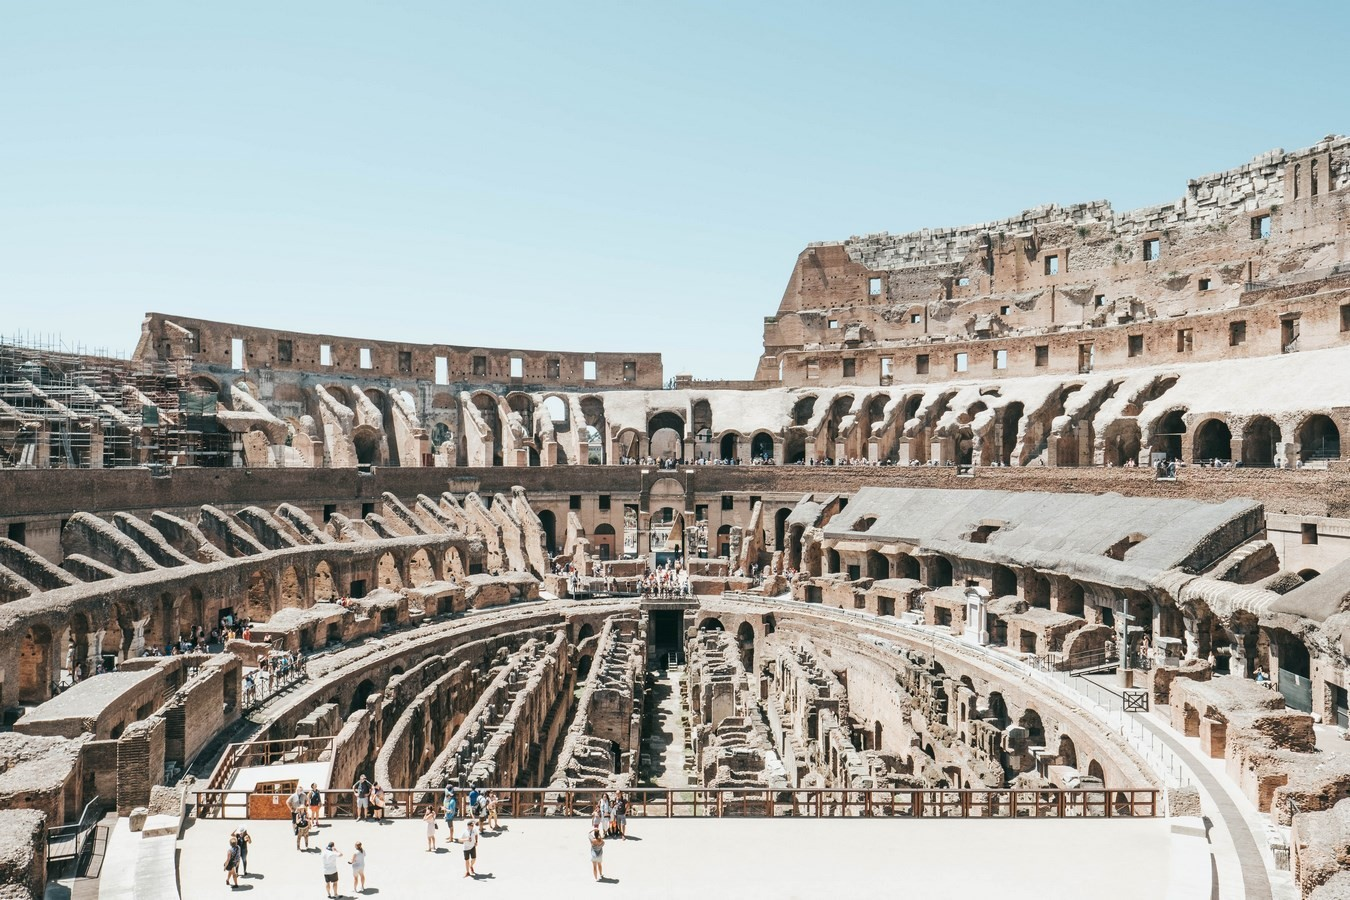 The Colosseum - Rome, Italy - Sheet2